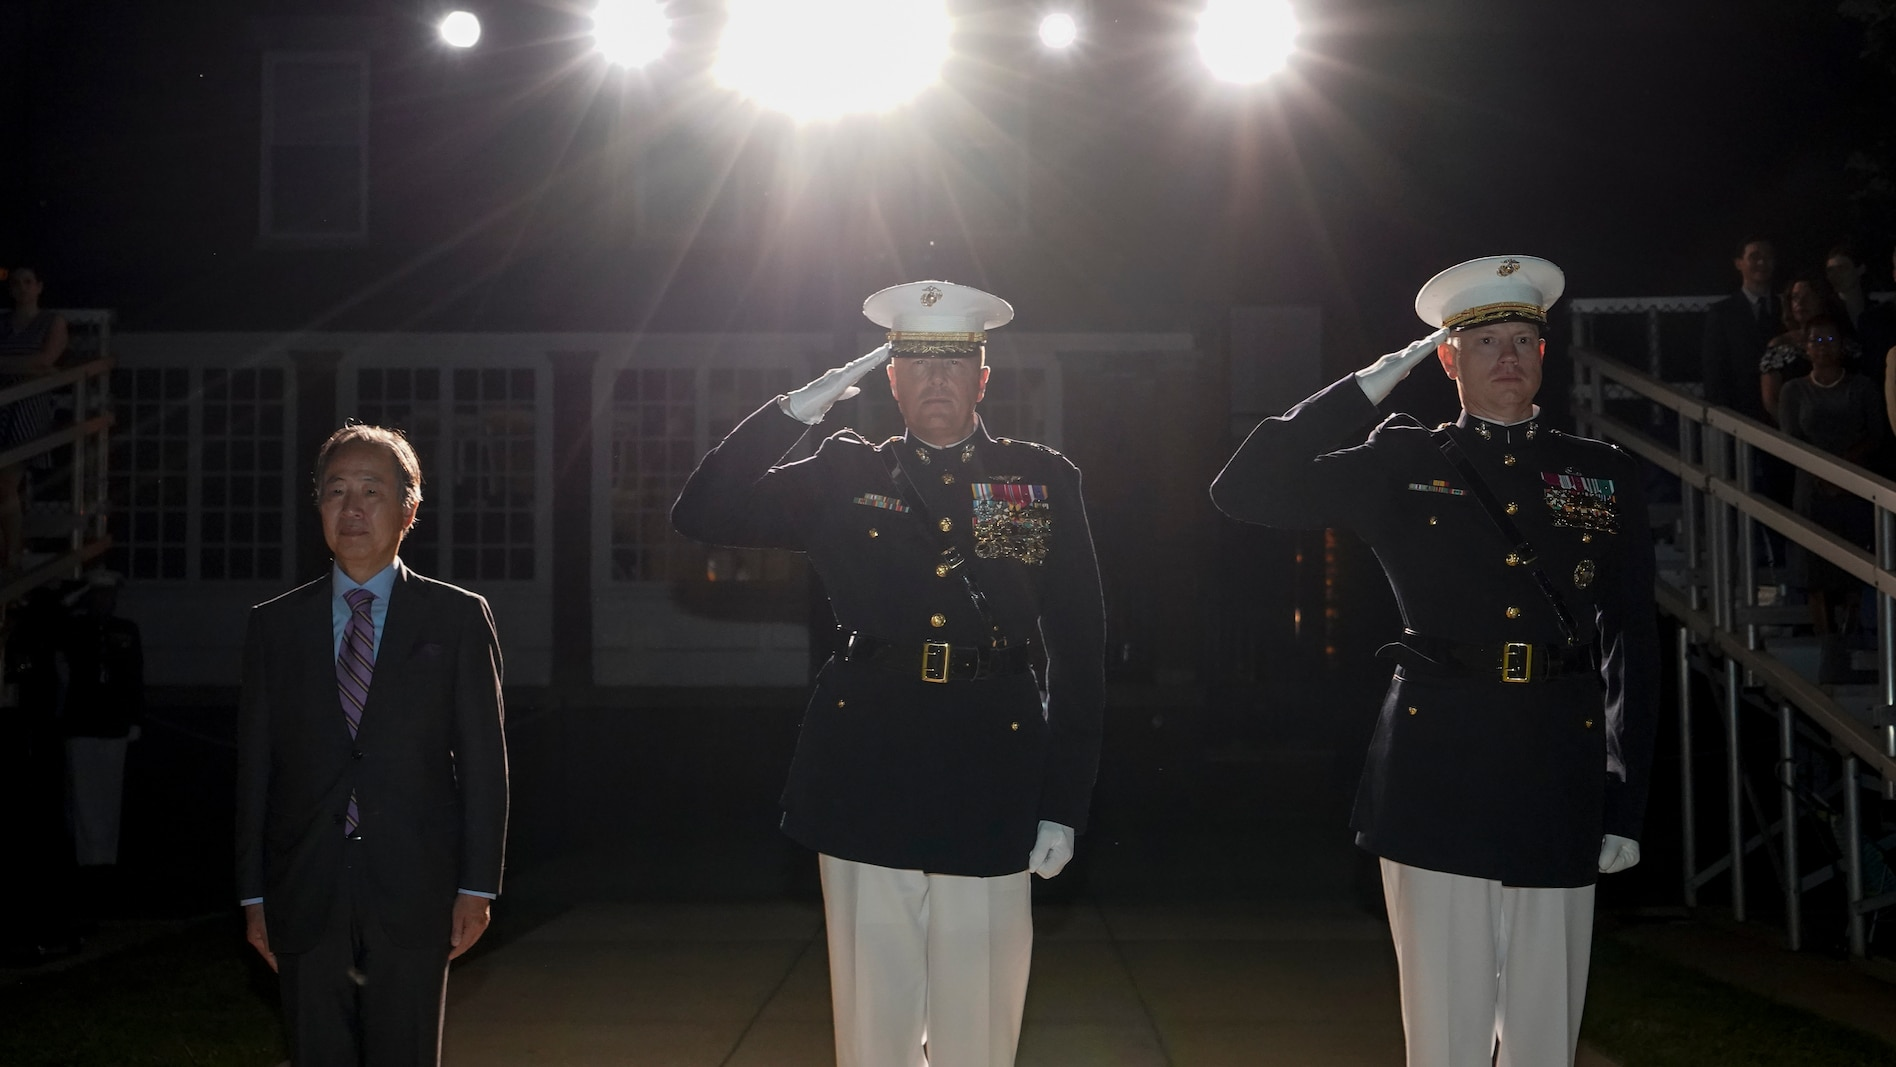 From left, Koji Tomita, Ambassador Extraordinary and Plenipotentiary of Japan to the United States, Lt. Gen. Mark R. Wise, Deputy Commander for Aviation, and Col. Teague A. Pastel, the commanding officer of Marine Barracks Washington, stand at the position of attention and render a salute during the Friday Evening Parade at MBW, July 23, 2021.